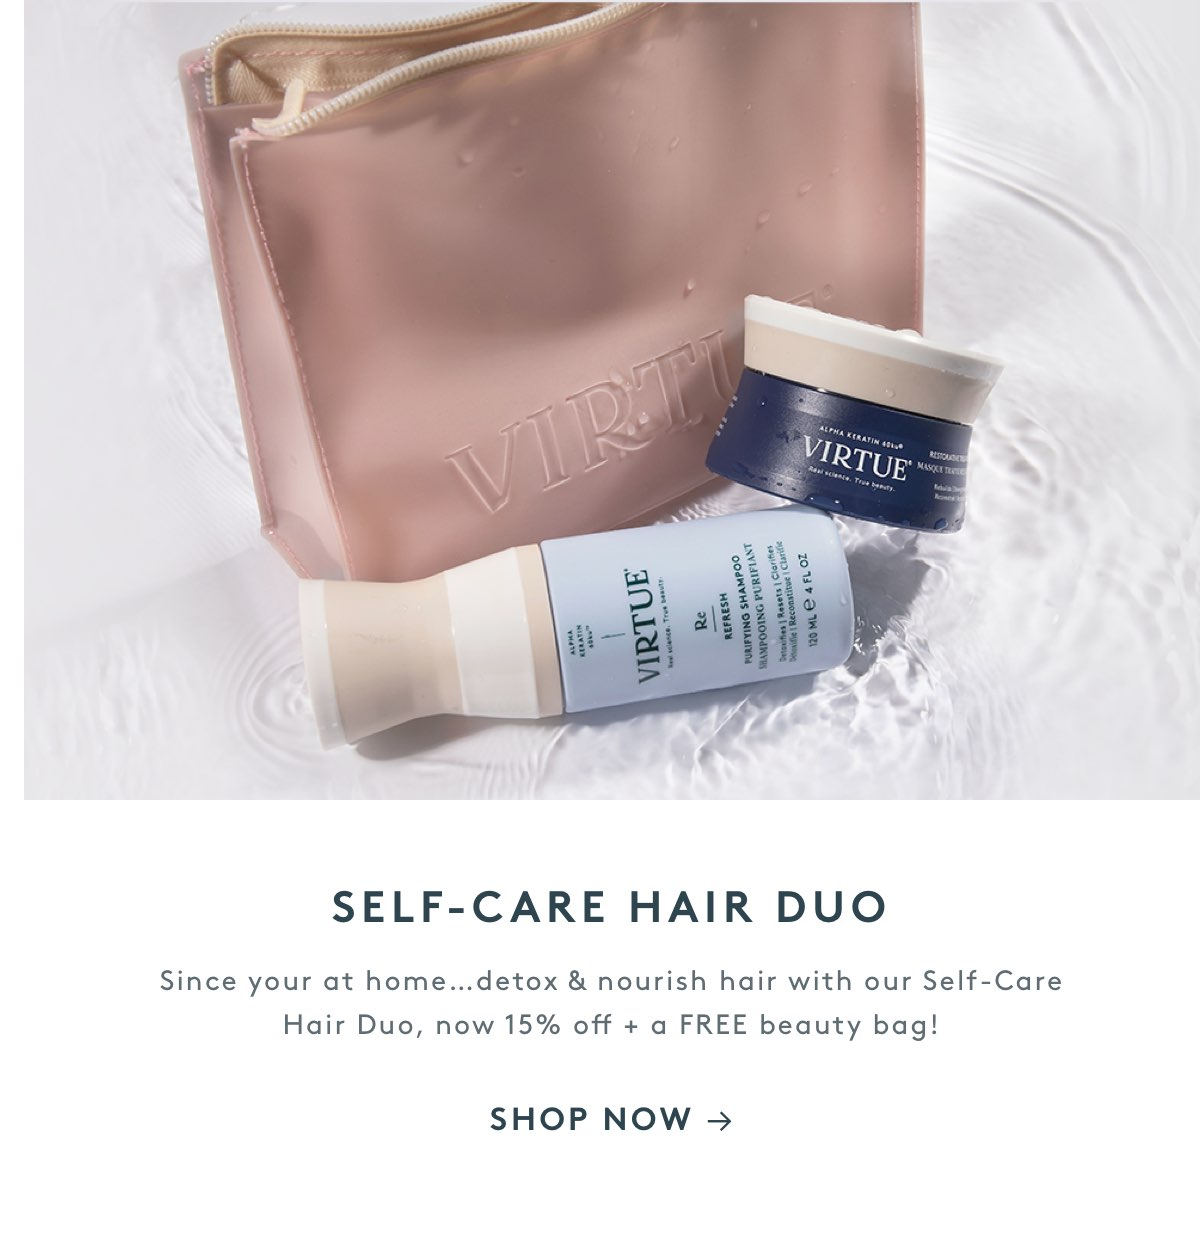 Self-Care Hair Duo